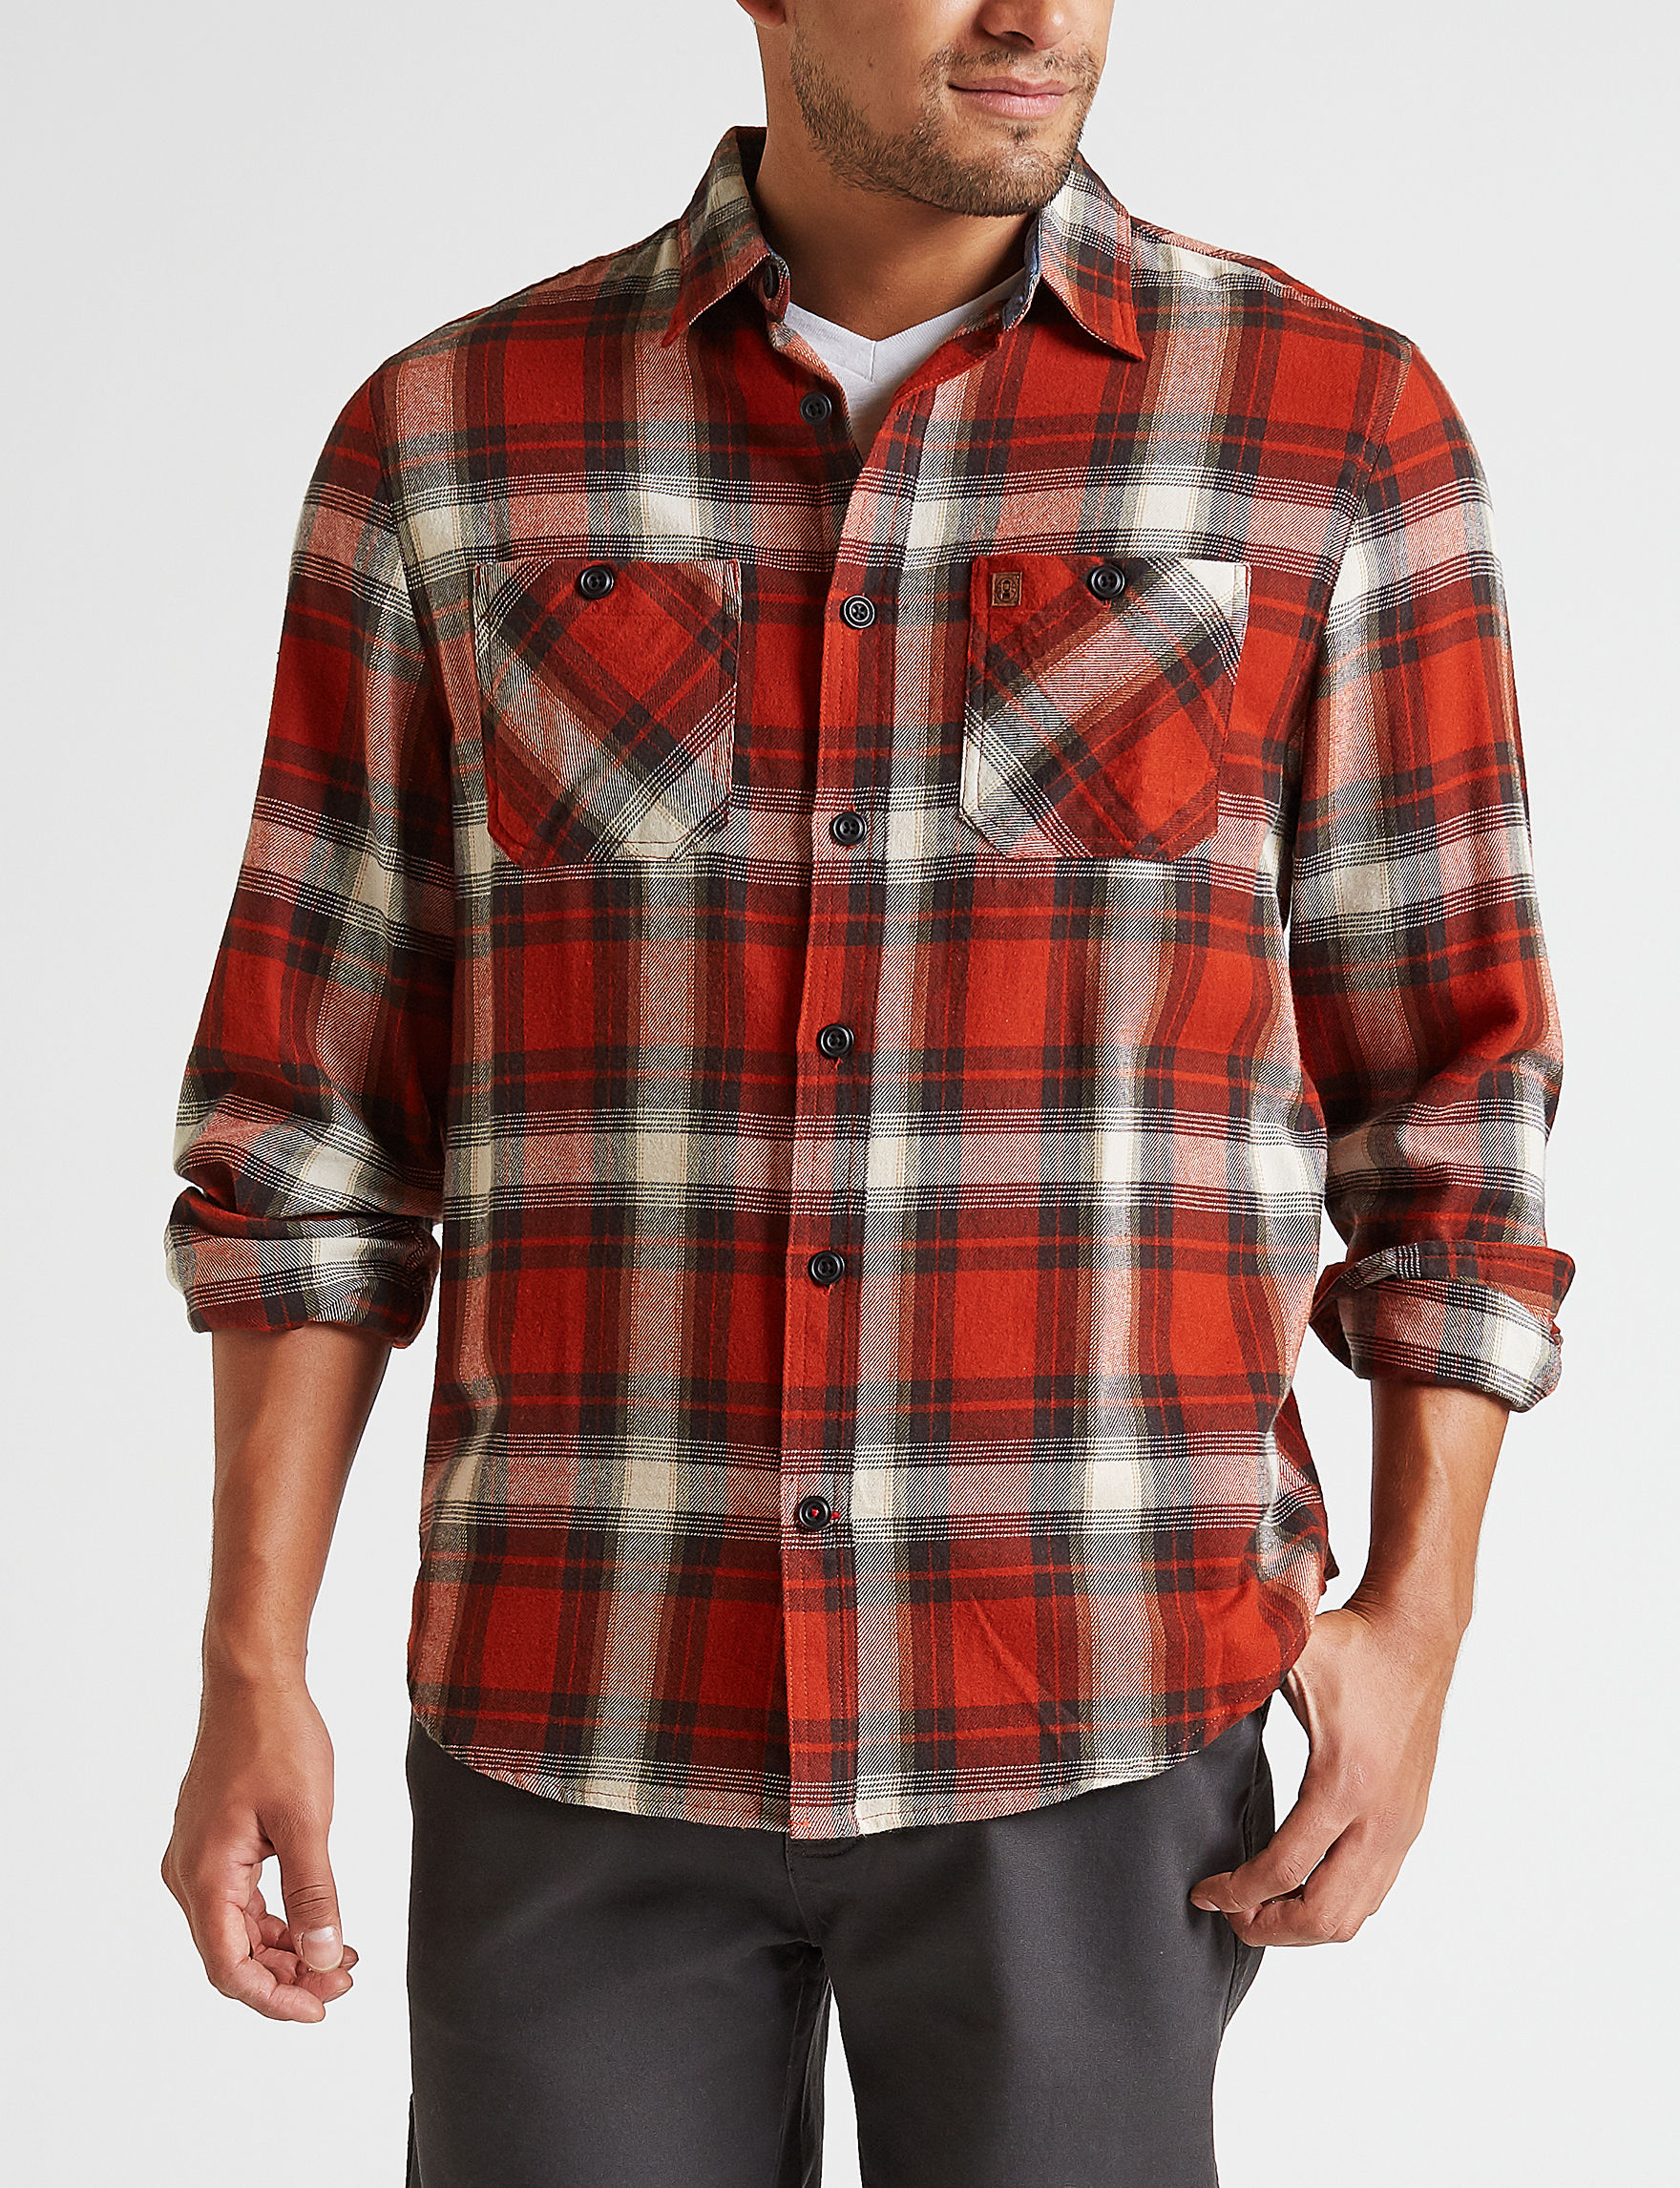 Coleman Rust Plaid Casual Button Down Shirts